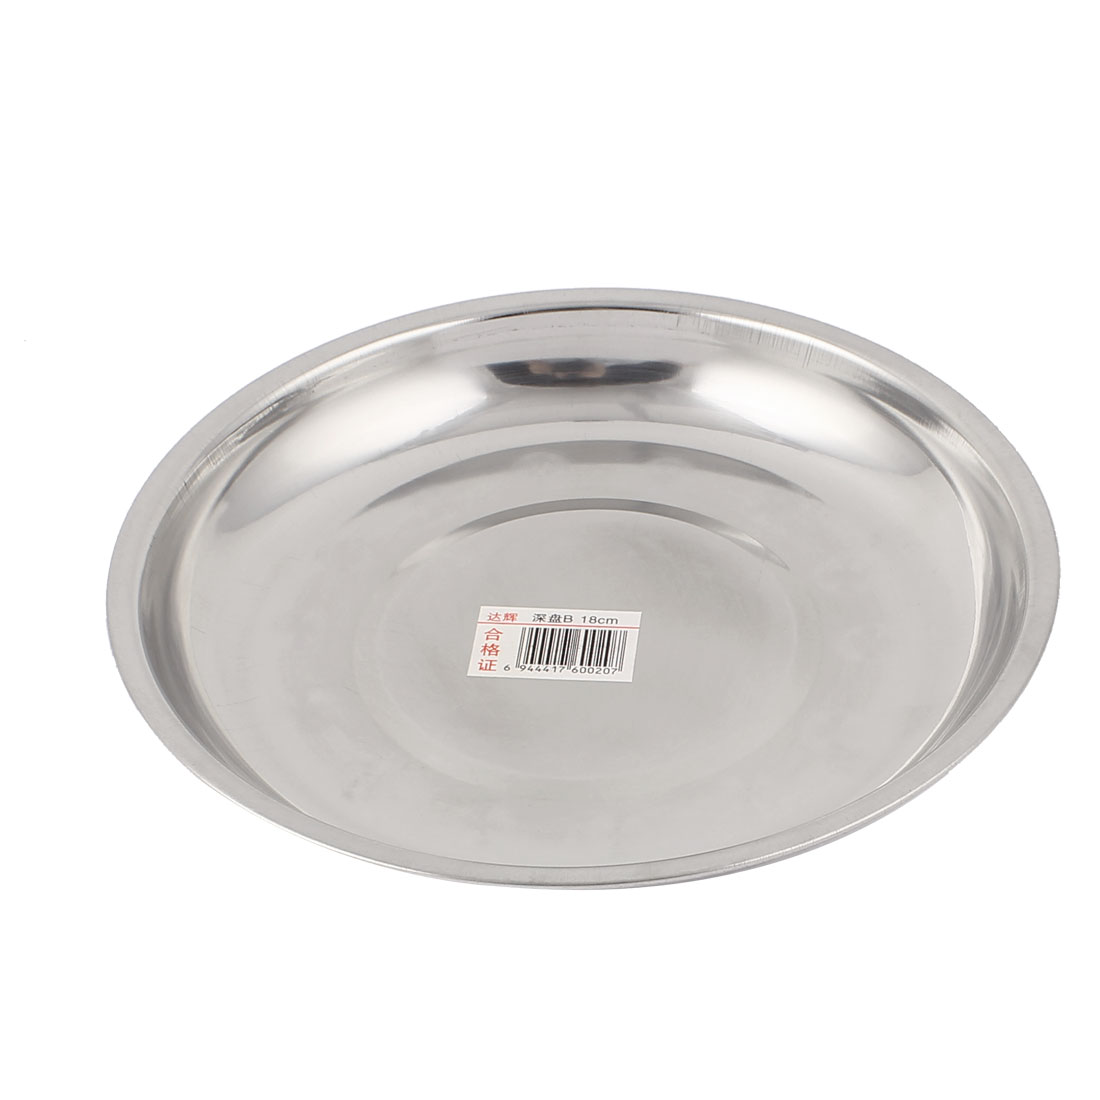 Round Stainless Steel Dinner Plate Dish Food Fruit Holder Container Tray 17cm